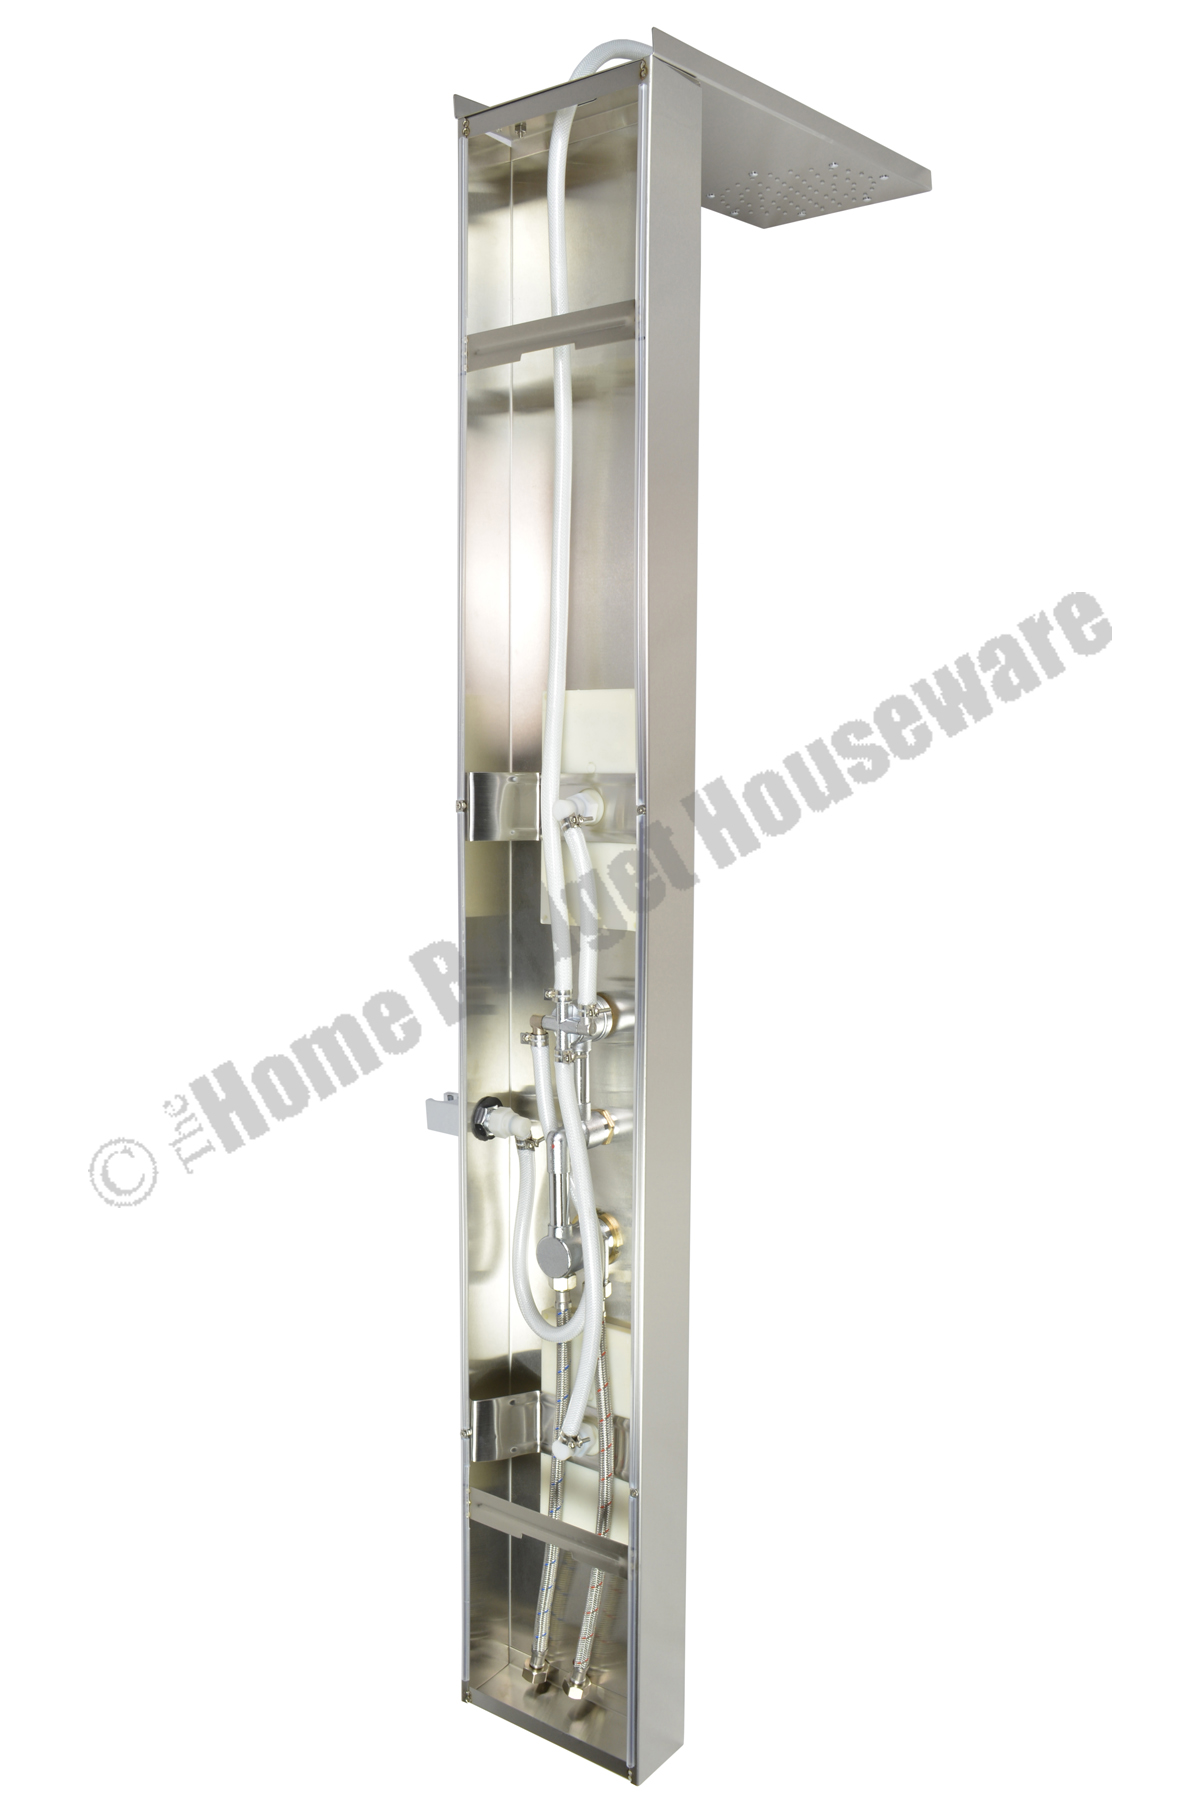 Overhead rainfall style body jets stainless steel for Shower tower with body jets